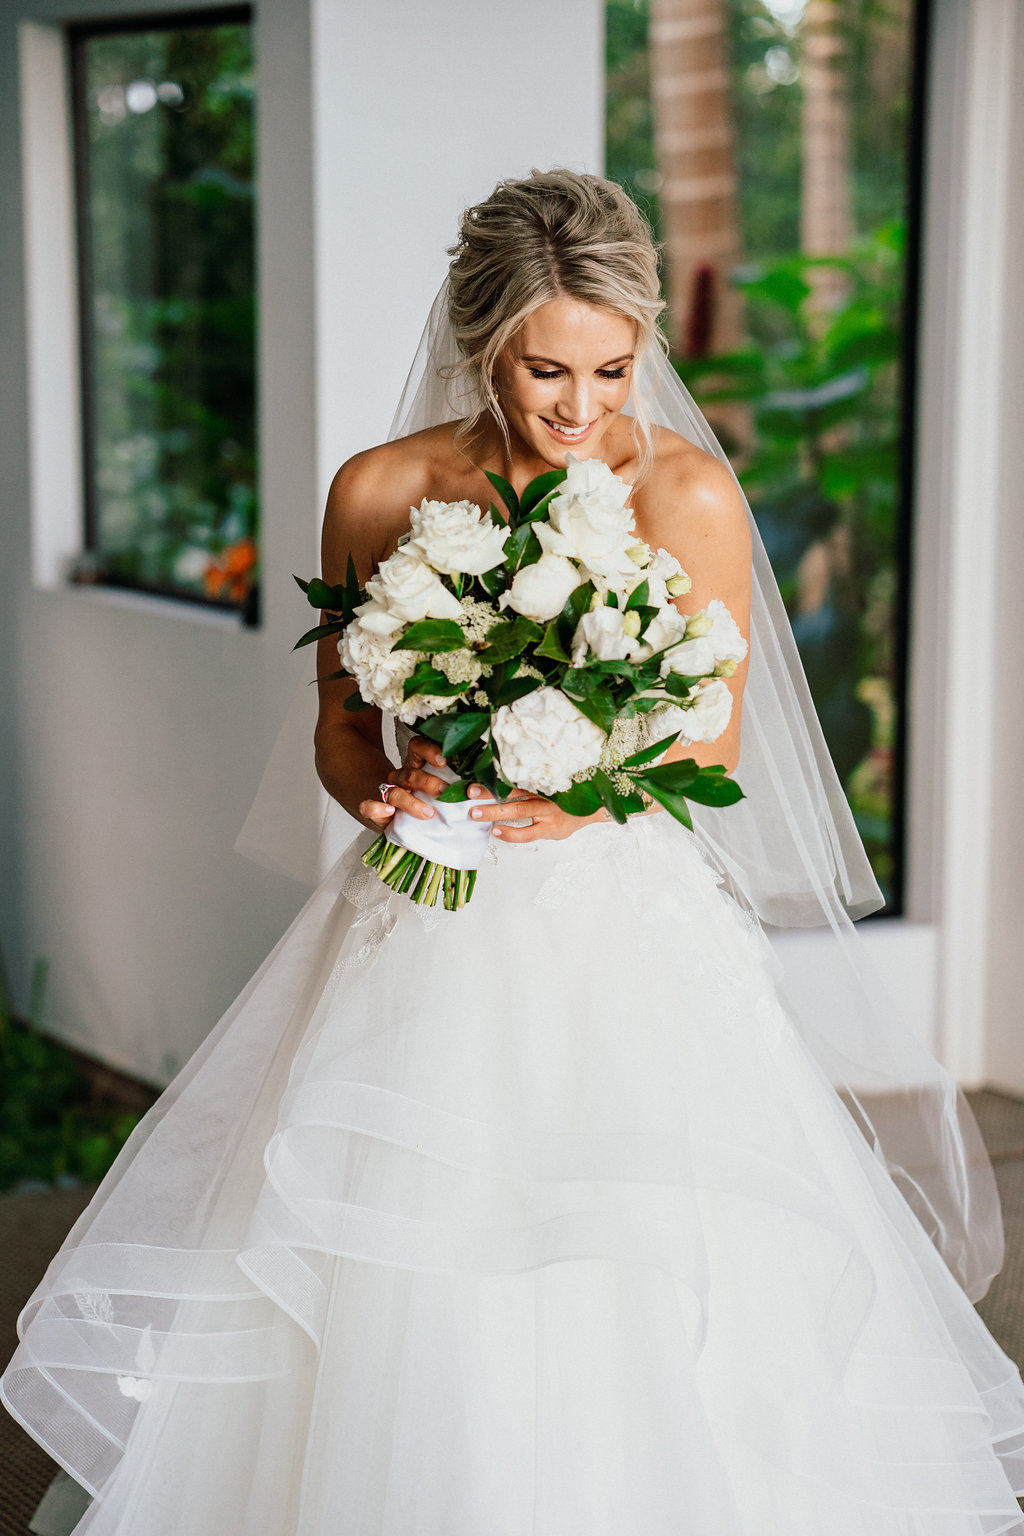 White and lush green bridal bouquet featuring roses